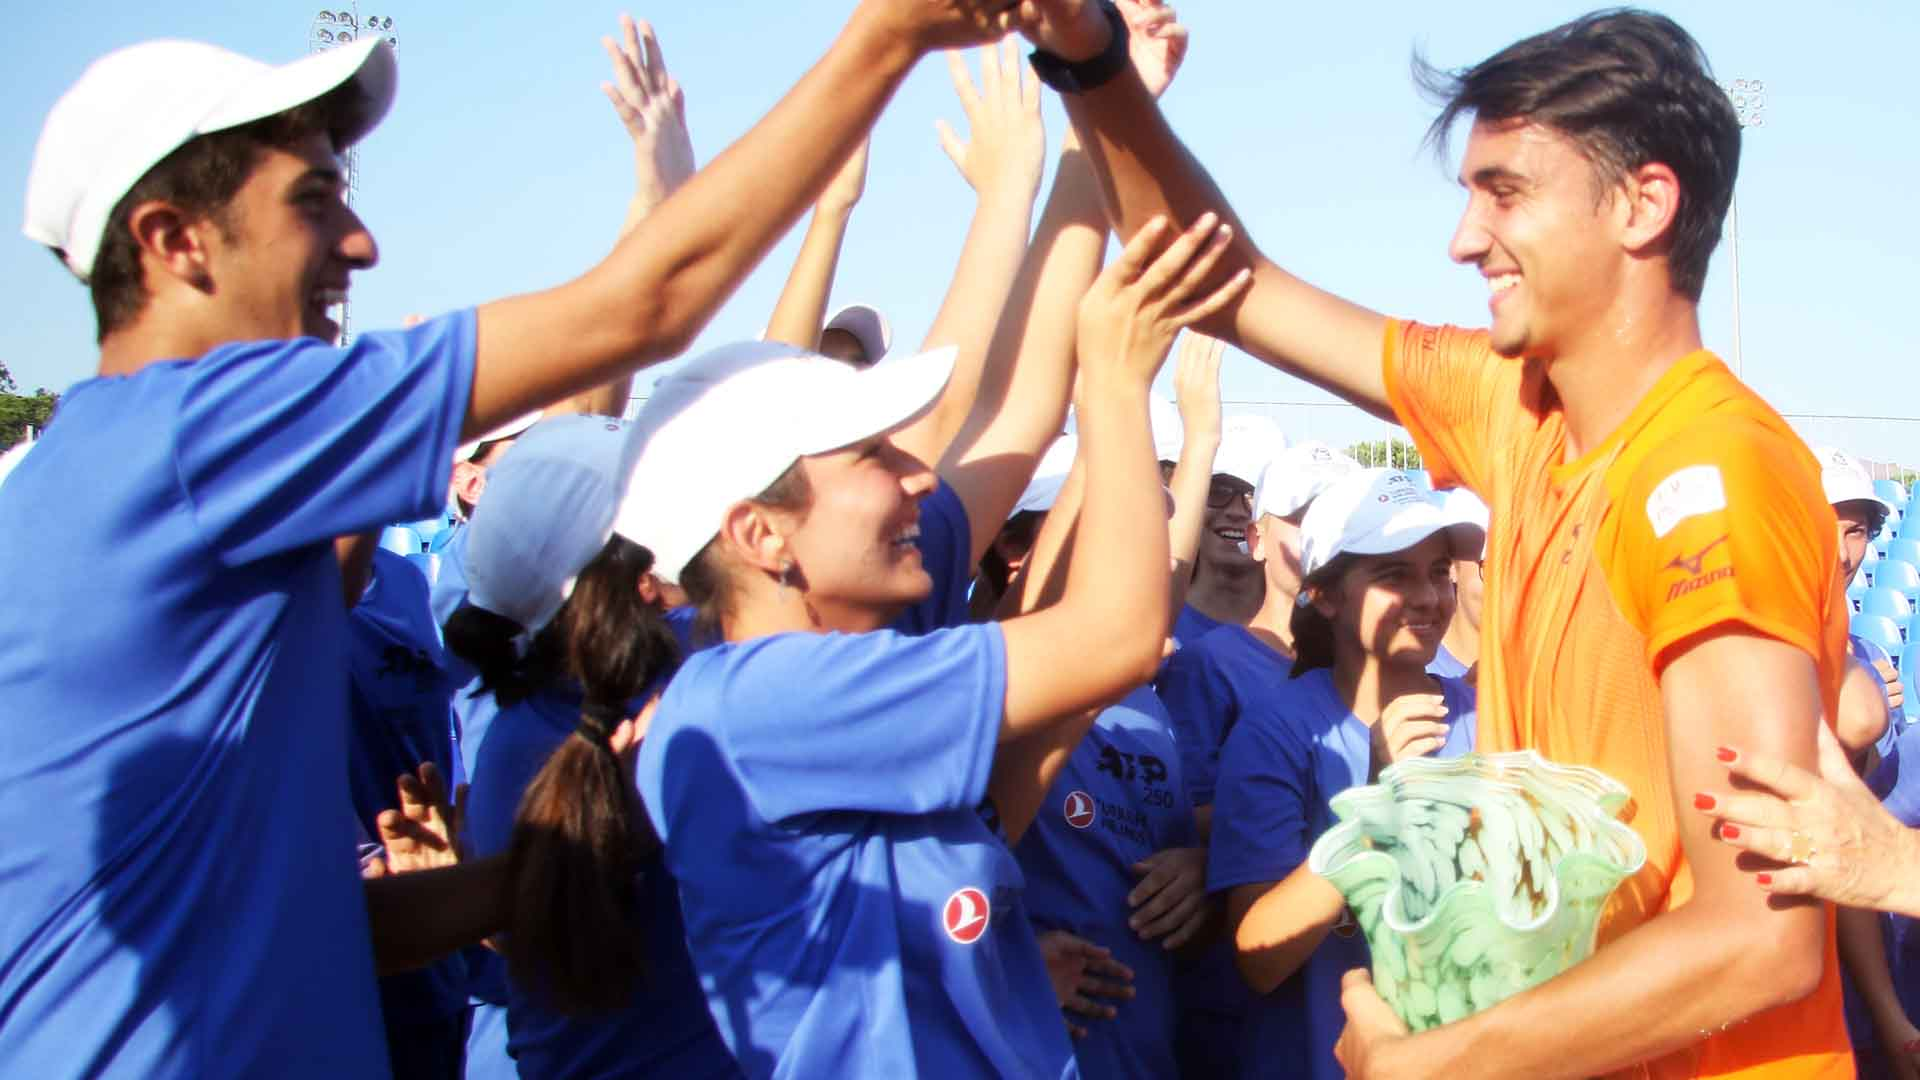 <a href='https://www.atptour.com/en/players/lorenzo-sonego/su87/overview'>Lorenzo Sonego</a> celebrates with ball kids after capturing the <a href='https://www.atptour.com/en/tournaments/antalya/7650/overview'>Turkish Airlines Open Antalya</a> trophy on Saturday.